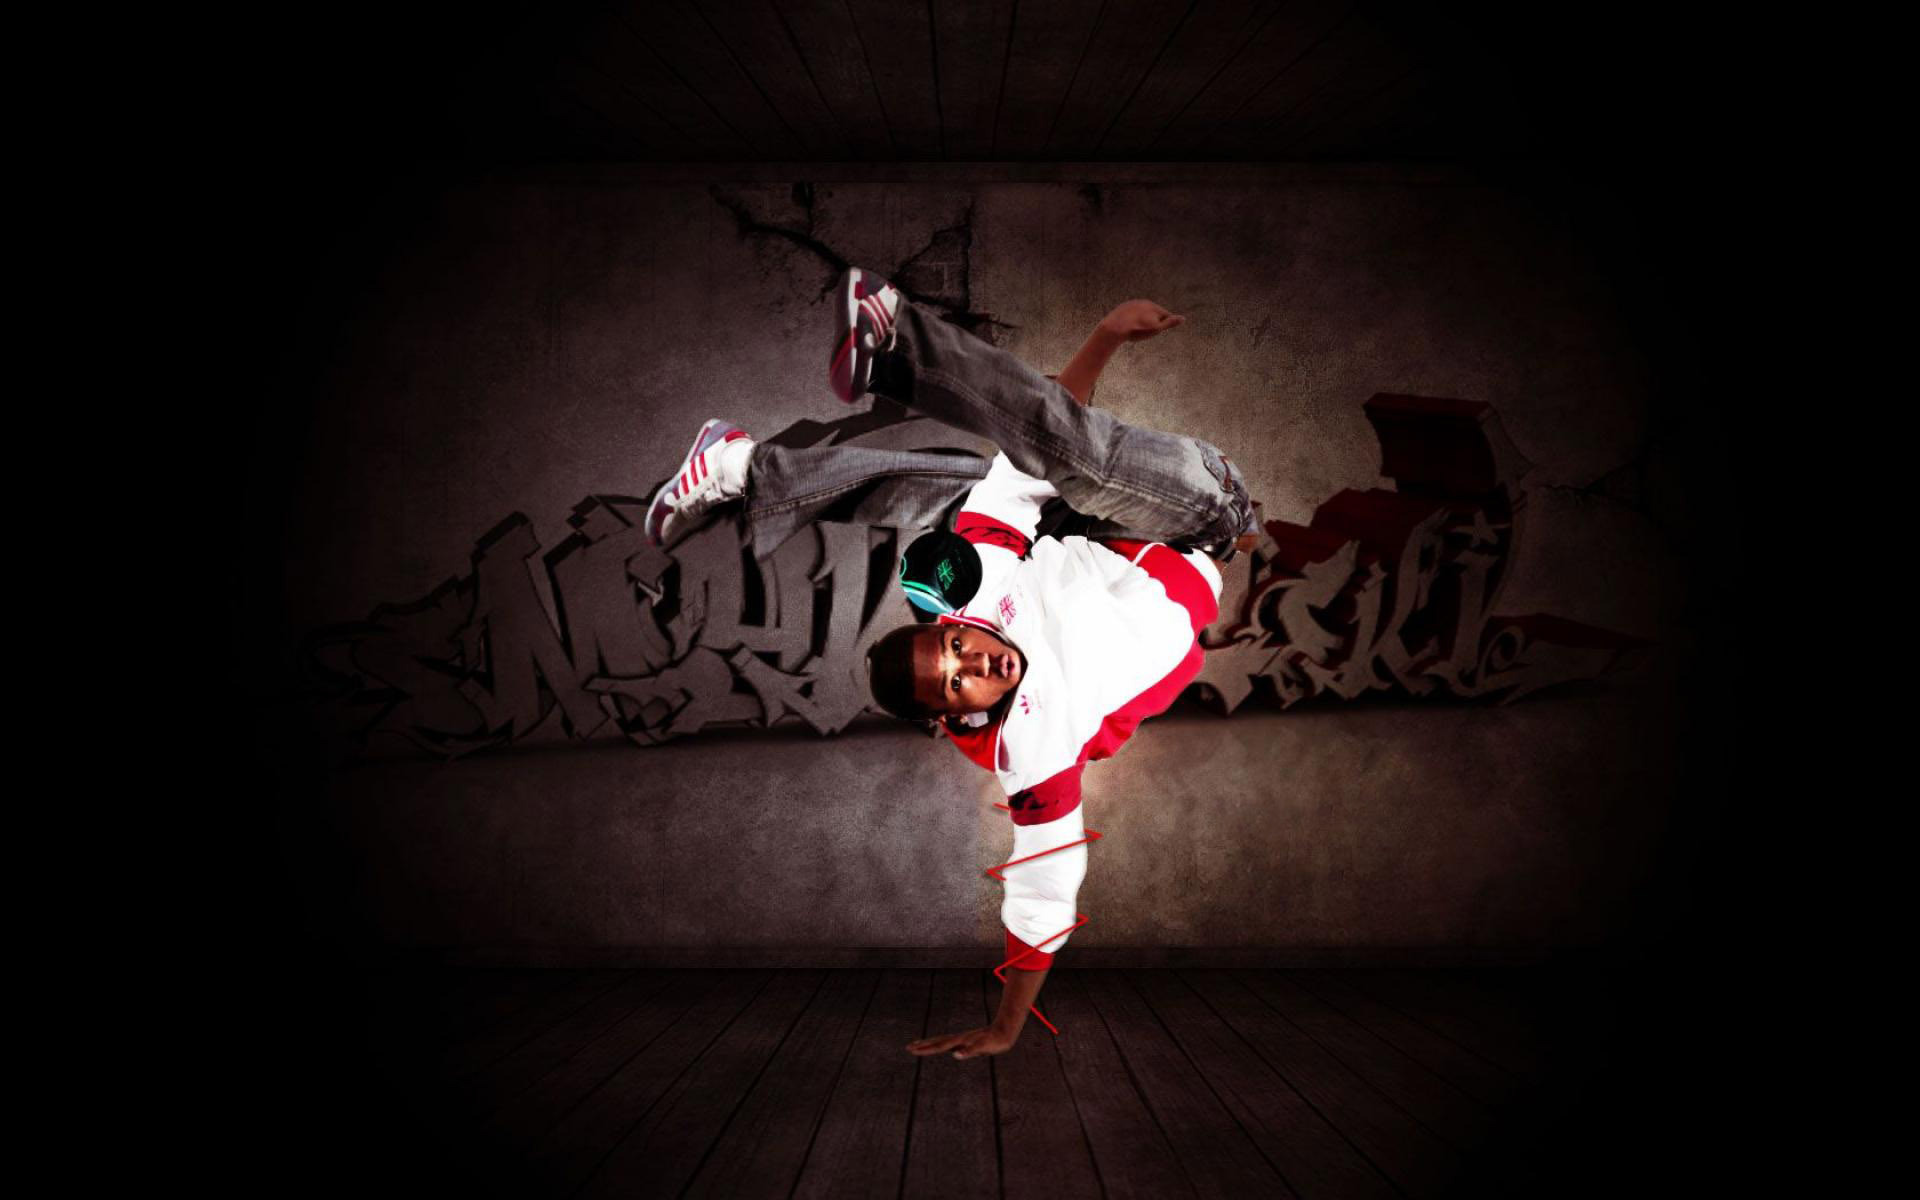 breakdance Breakdance was the evil counterpart of the superhero vibe breakdance was one of j'edd j'arkus' made men he is able to focus and genearate his power thorugh dance moves, hence the codename.